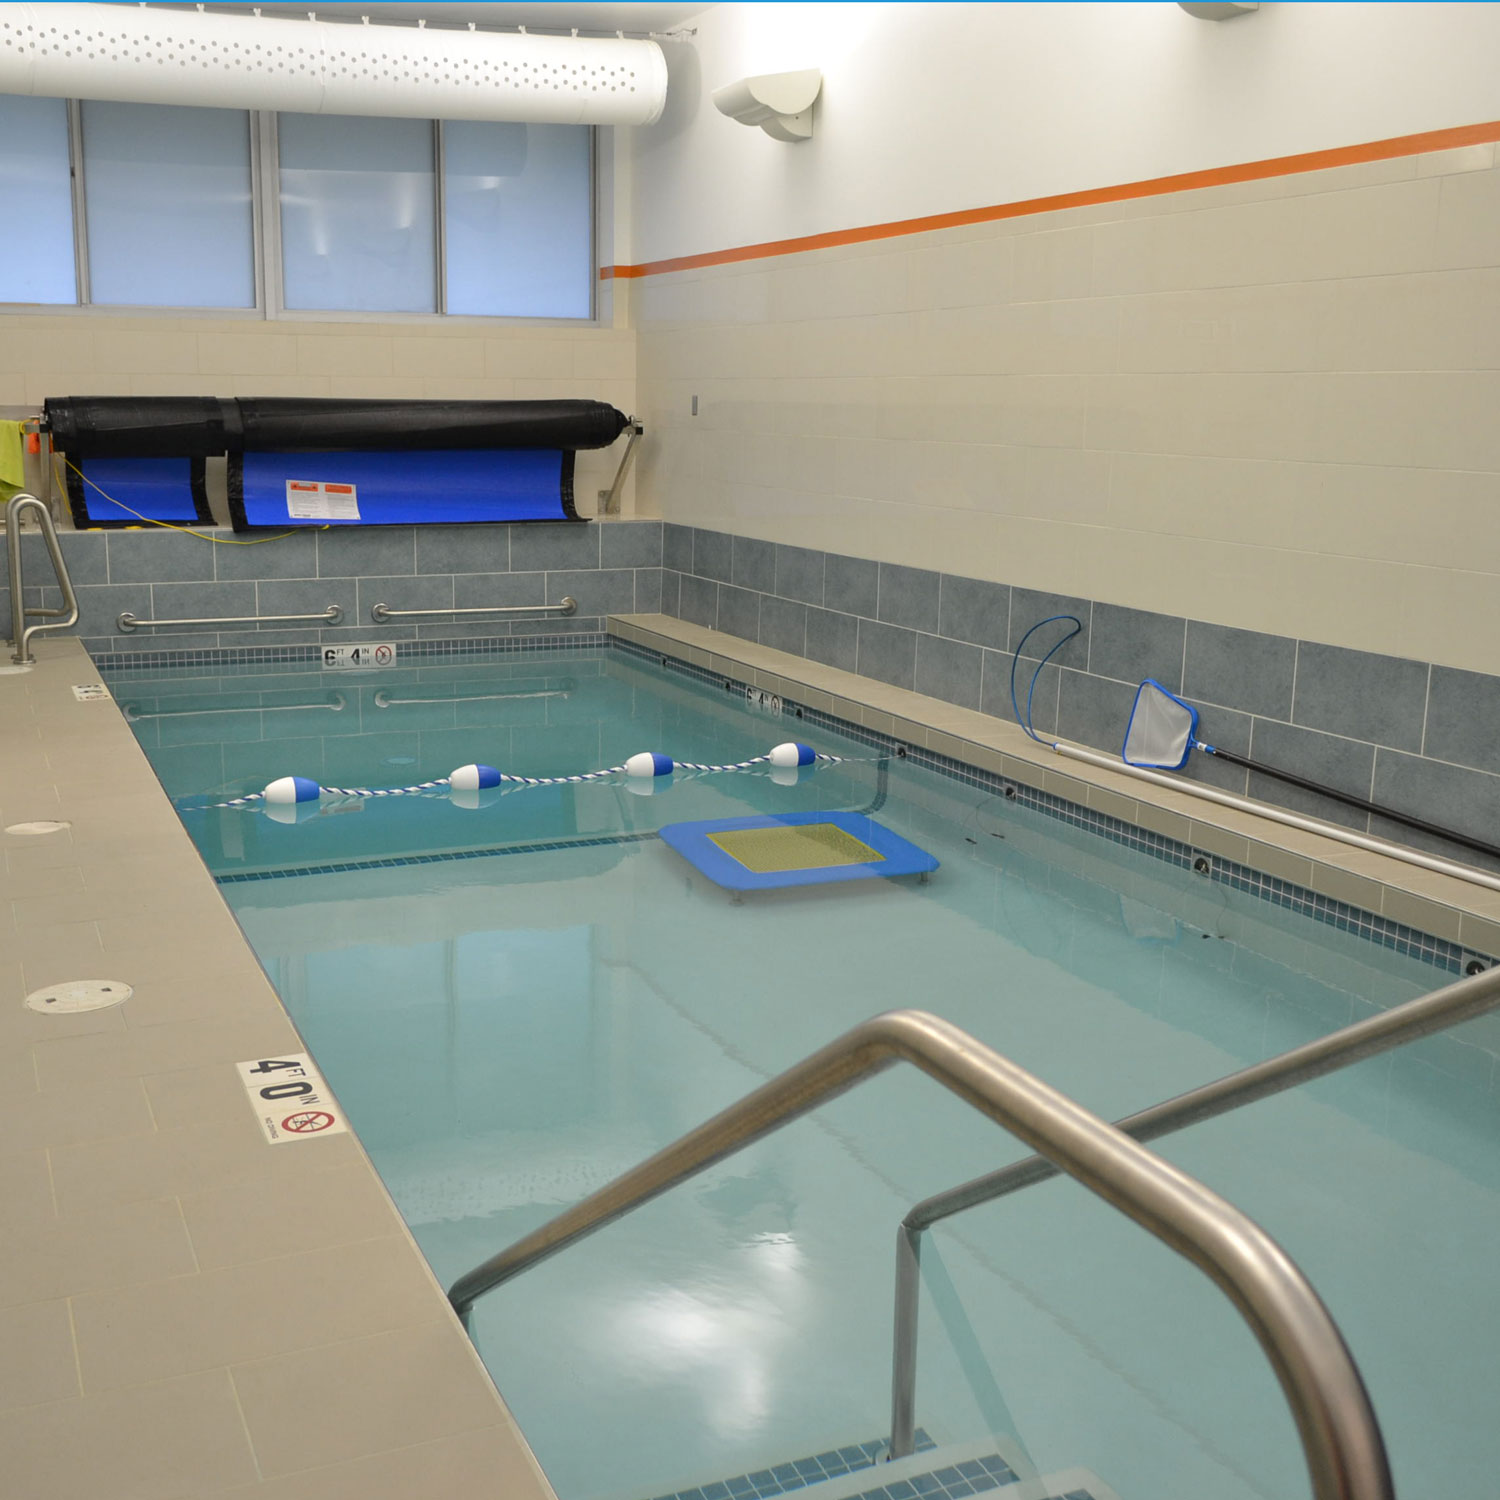 The multi-depth pool was designed for jumping workouts and to aid athletes returning from injury.